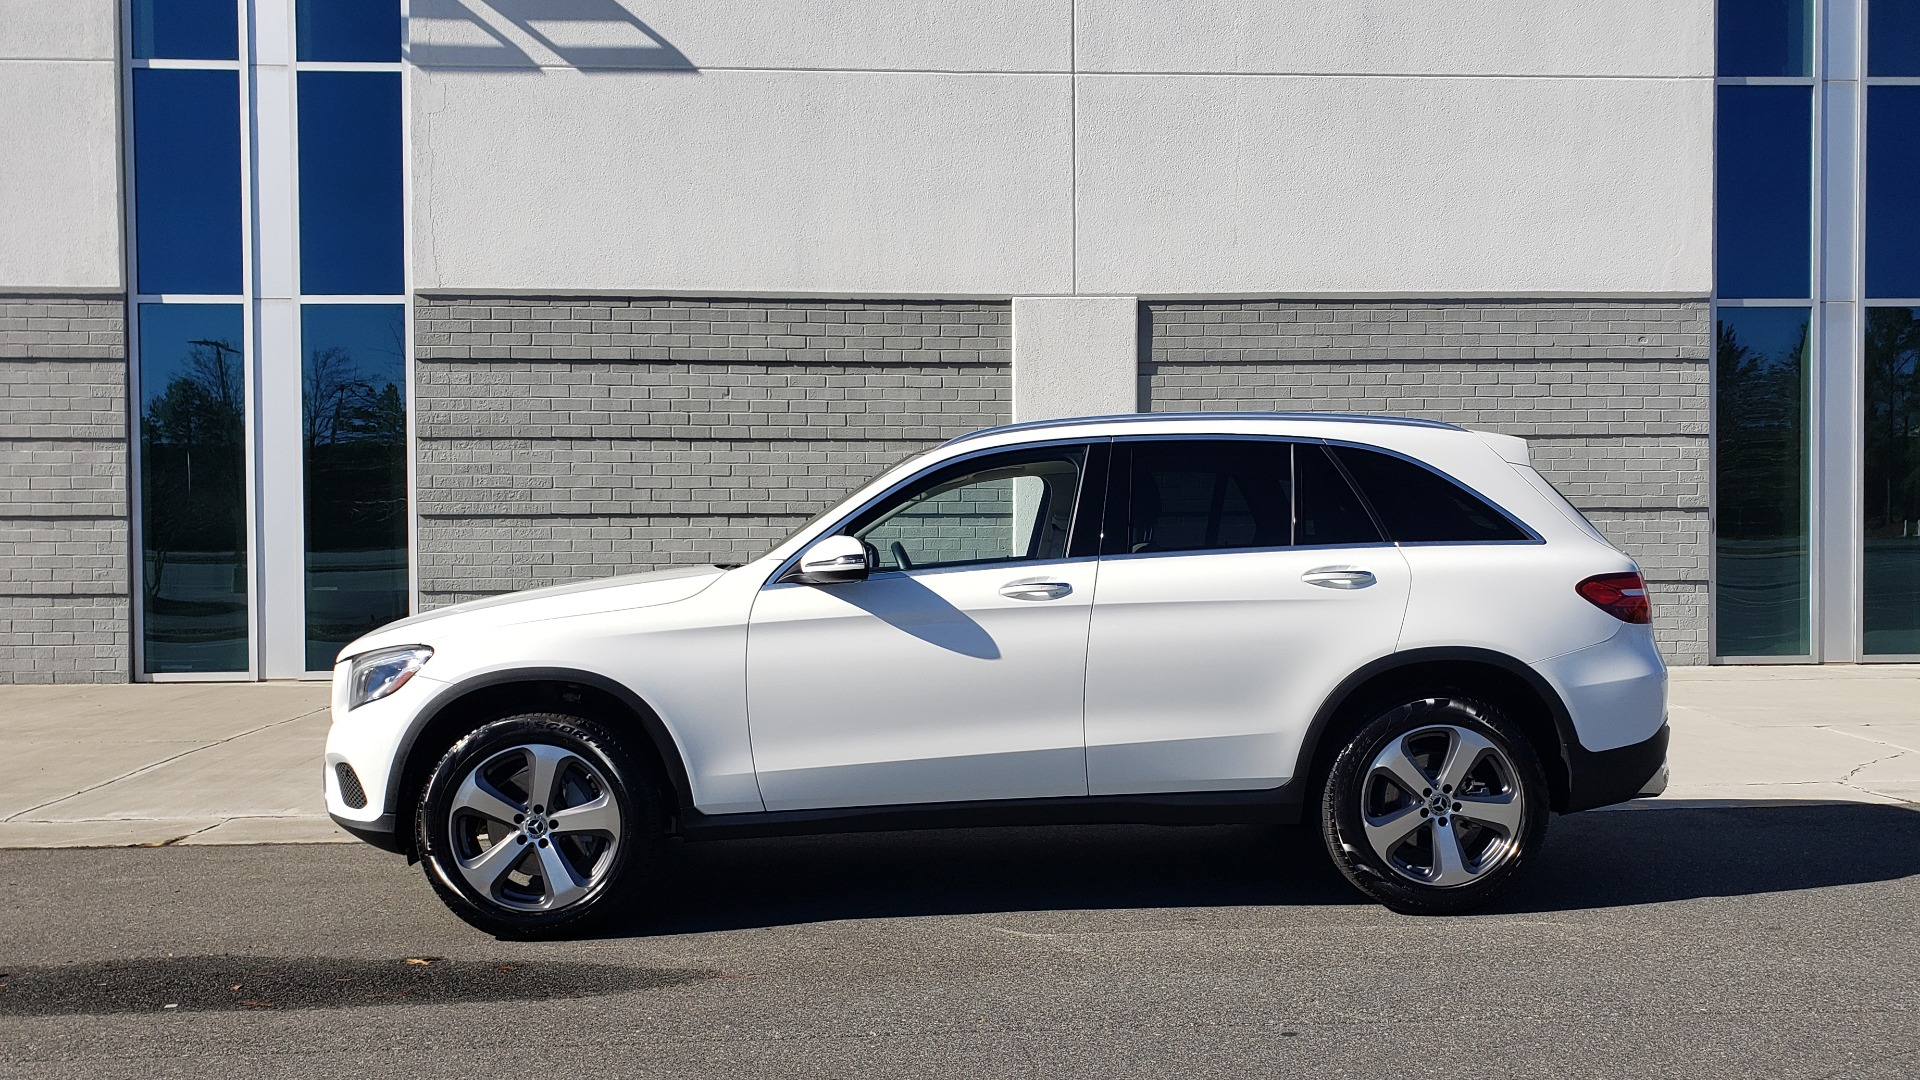 Used 2018 Mercedes-Benz GLC 300 4MATIC / PREM PKG / NAV / SUNROOF / REARVIEW for sale $36,995 at Formula Imports in Charlotte NC 28227 2